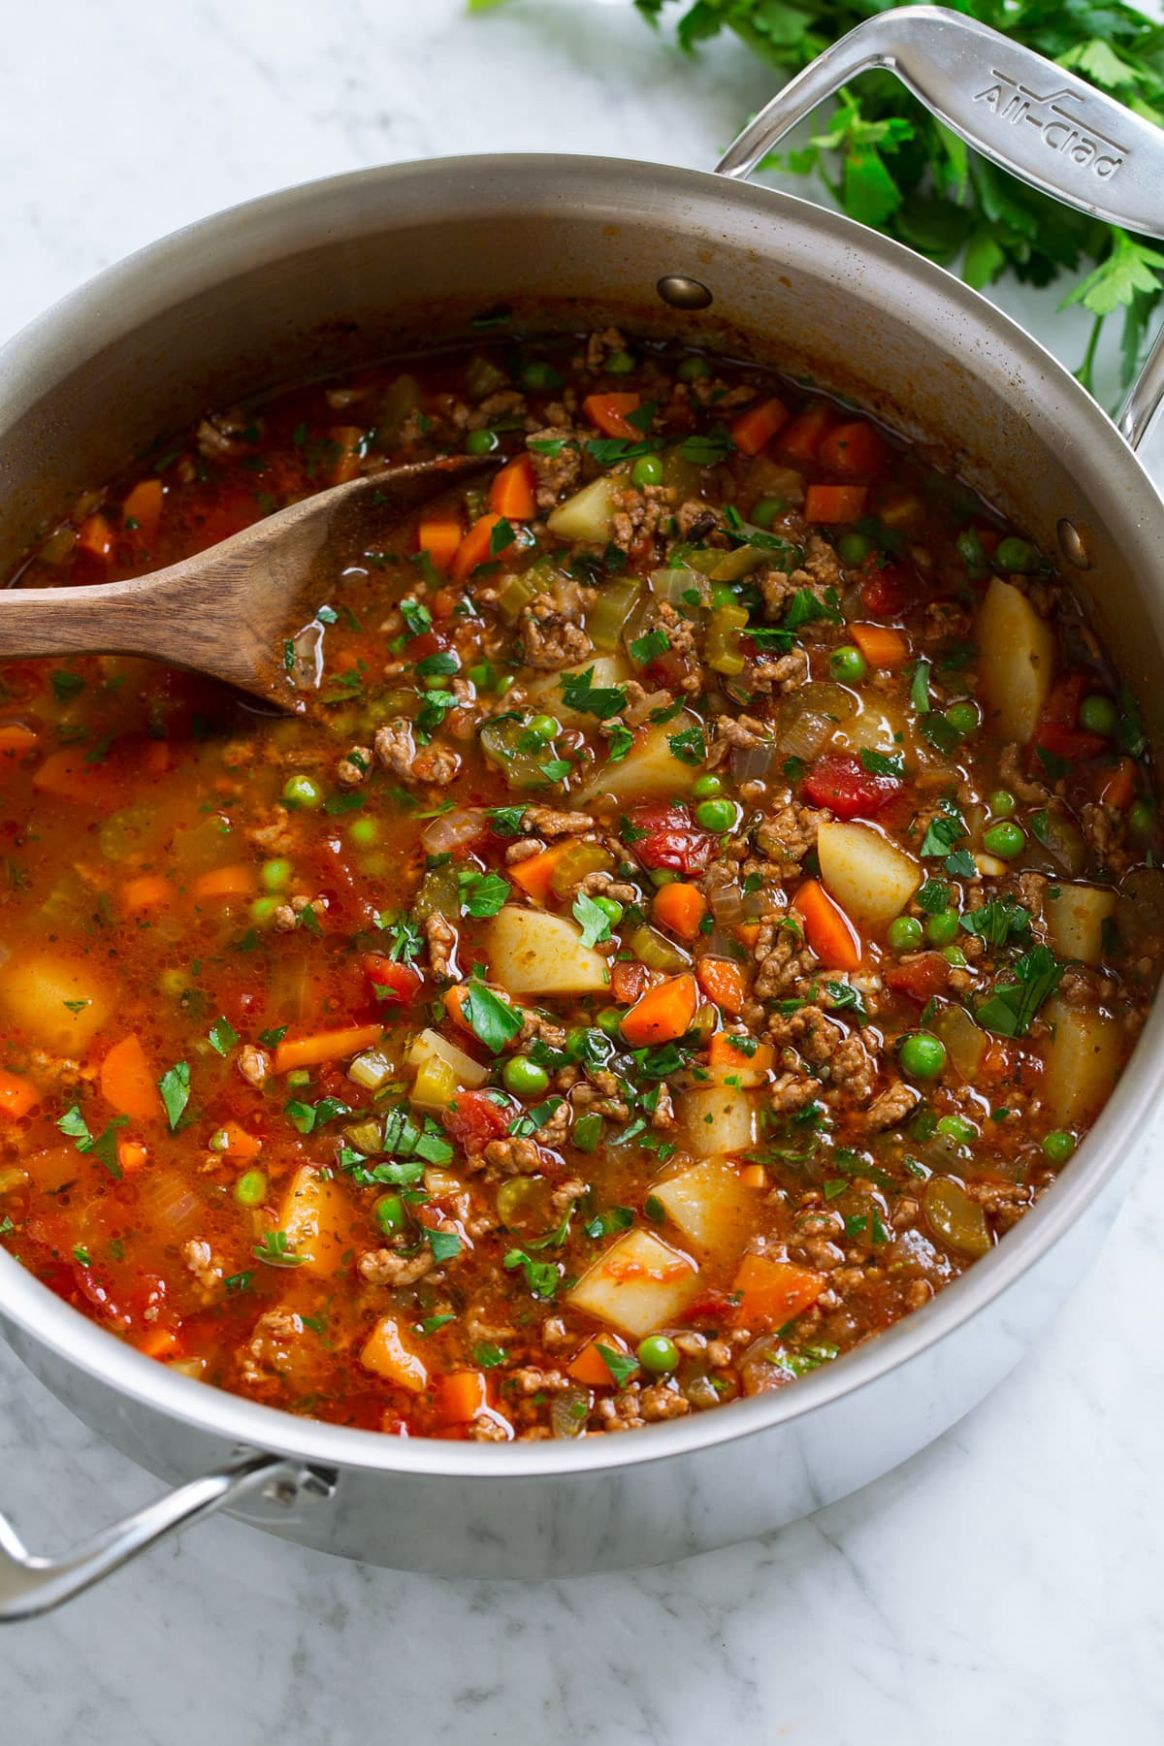 Hamburger Soup - Cooking Classy - Soup Recipes Using Ground Beef